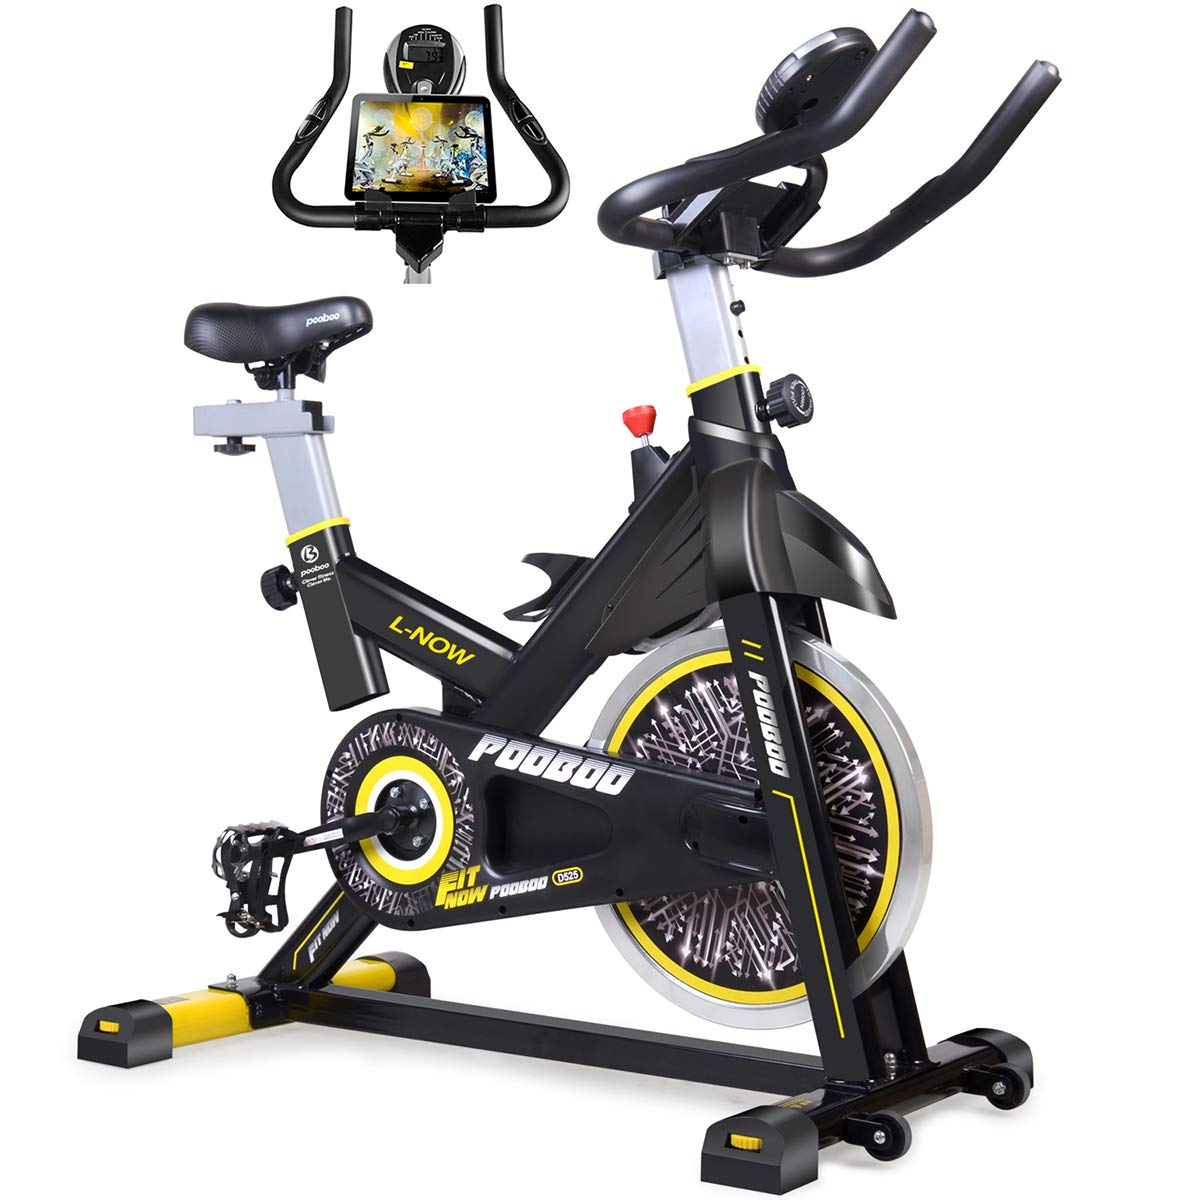 Sunny Health Fitness Magnetic Folding Recumbent Exercise Bike Includes Digital Monitor, Cushioned Seat and Back and 220 lb Max Capacity – SF-RB1117